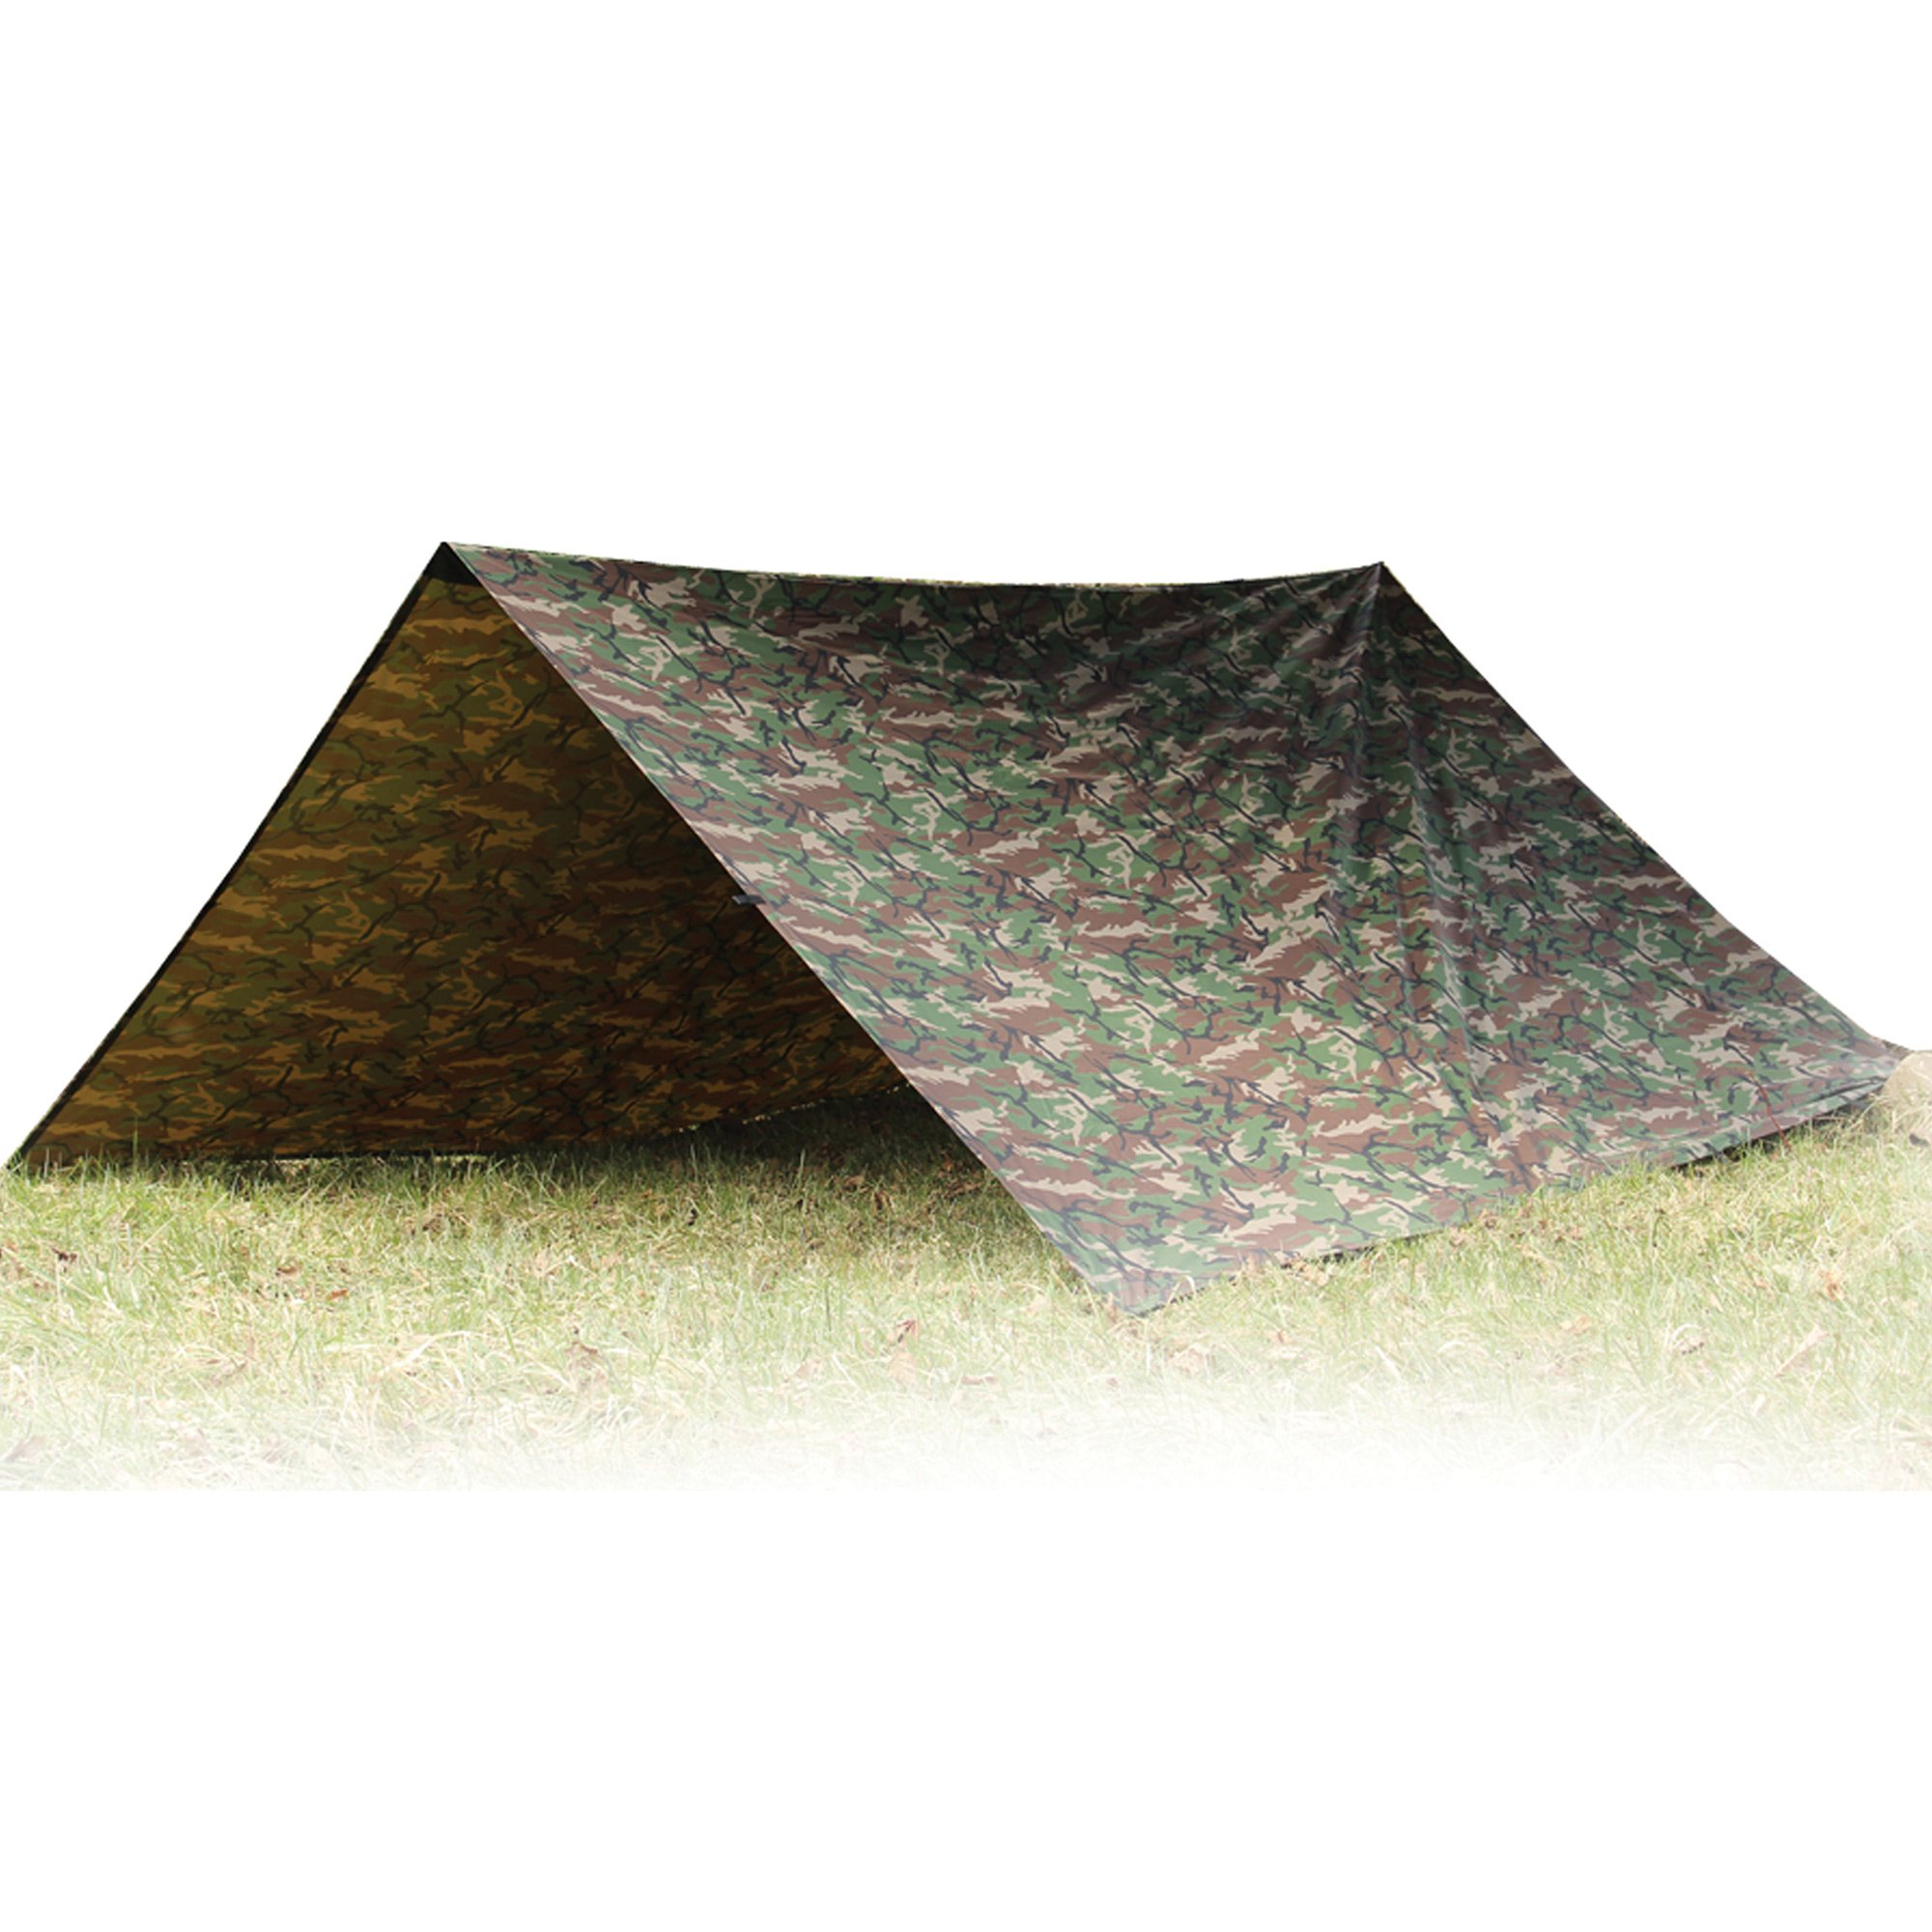 Aqua Quest Defender Tarp Large 13 x 10 ft Camo - Heavy Duty Waterproof Nylon Shelter - World Renowned  King Kamo  Tarp  sc 1 st  Amazon.com & Best Rated in Camping Tent Tarps u0026 Helpful Customer Reviews ...